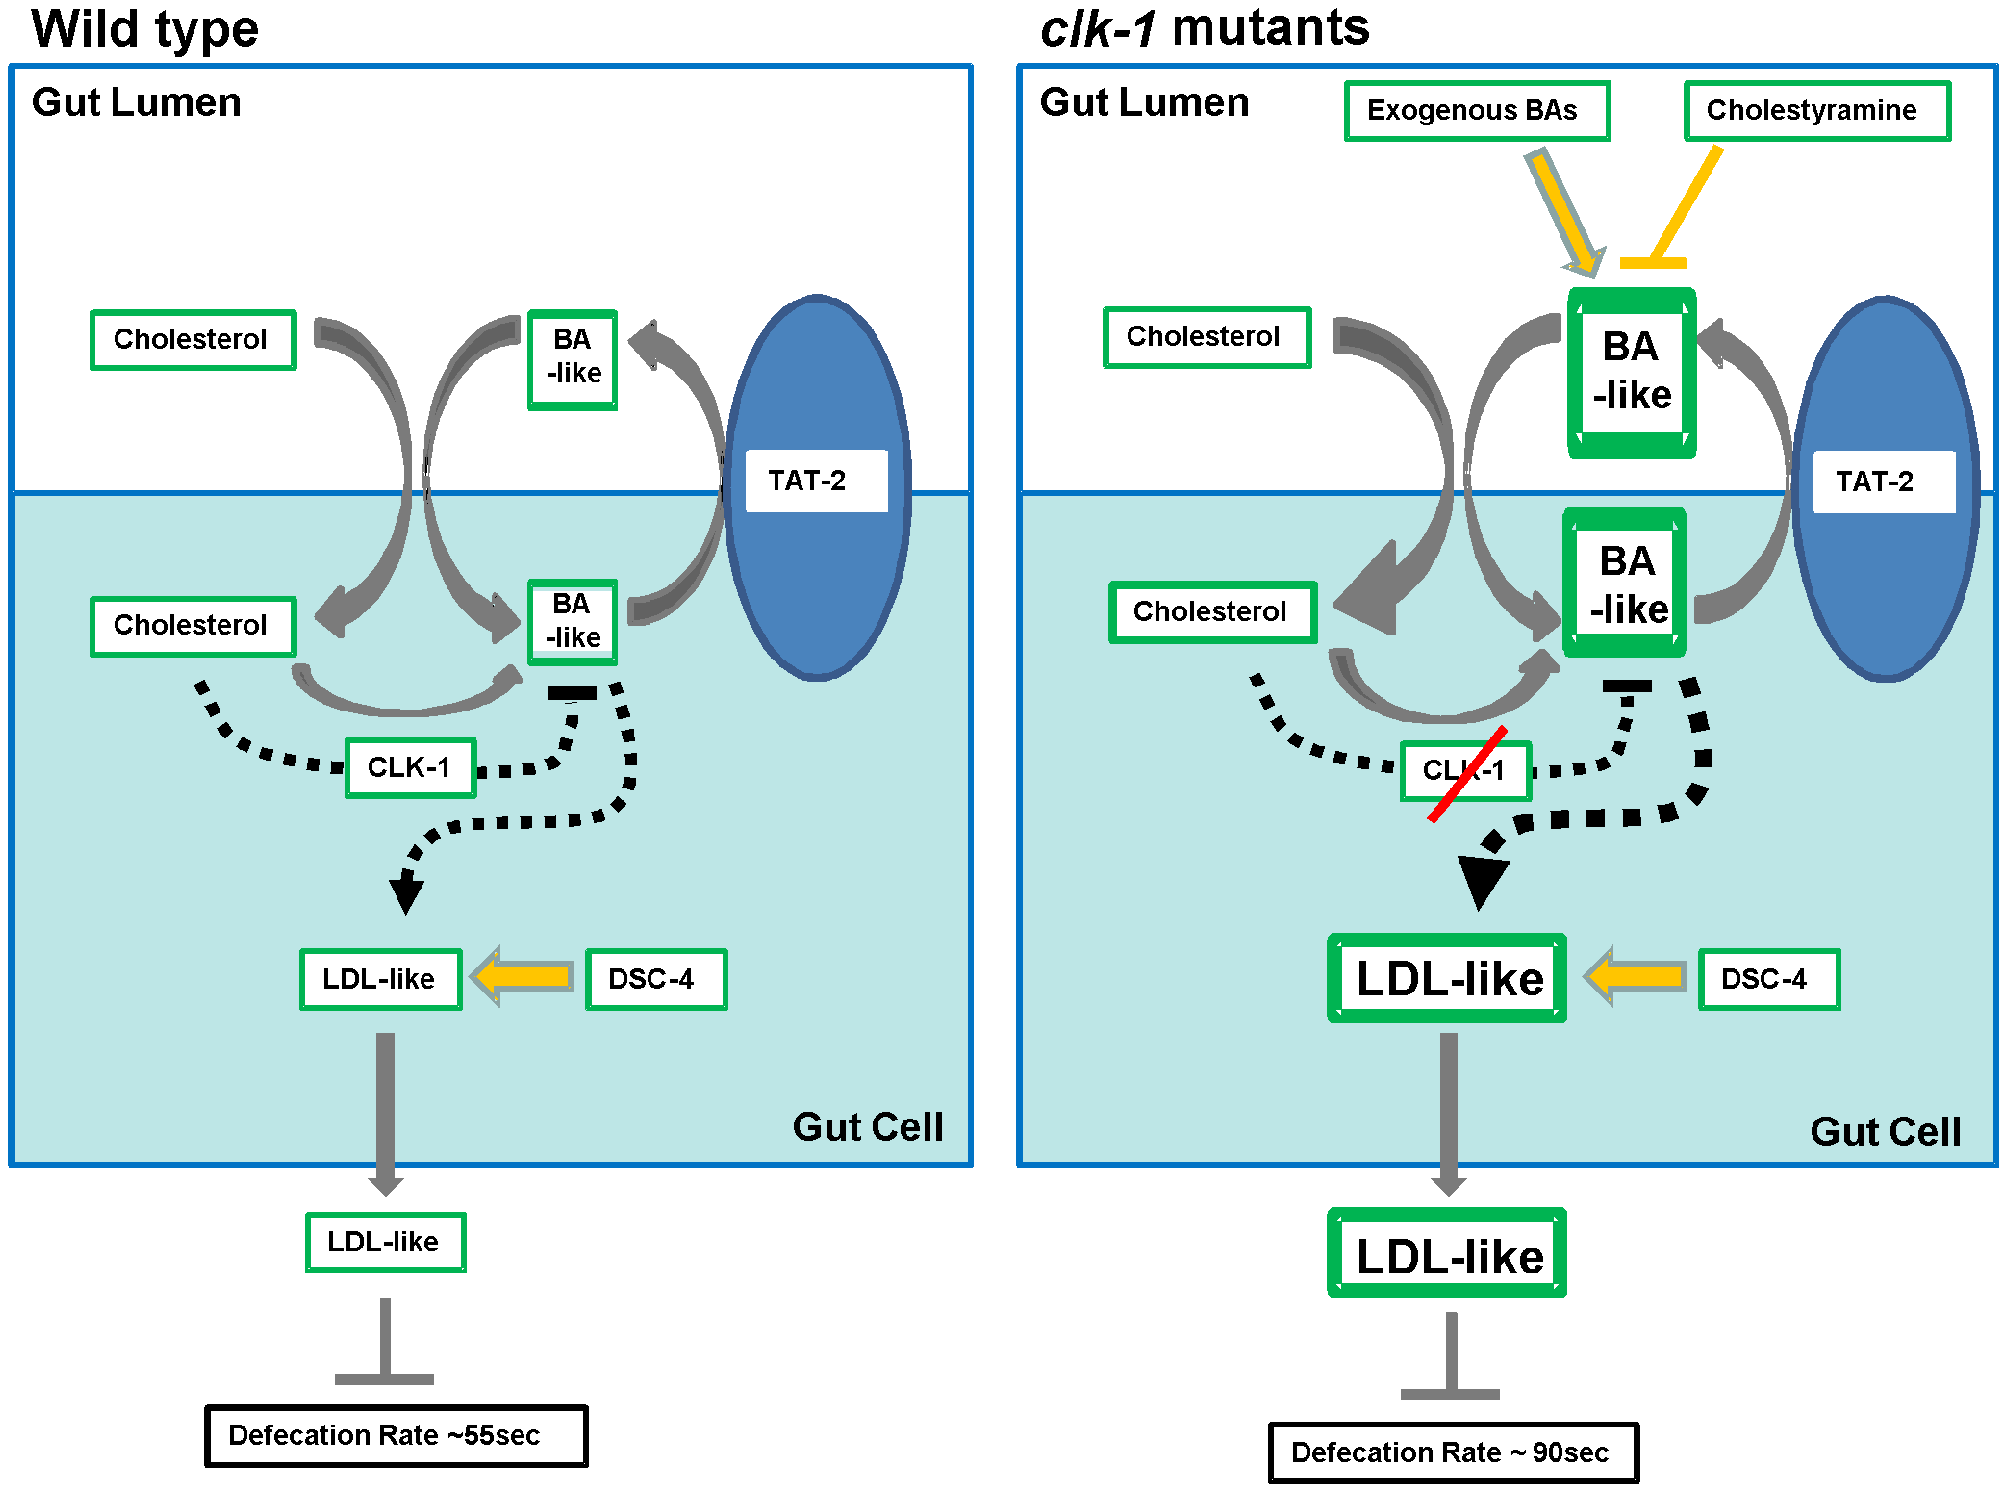 Schematic representation of the biosynthetic and regulatory interactions relating cholesterol uptake and bile acid (BA) biosynthesis and secretion to the biosynthesis and secretion of LDL-like lipoproteins.